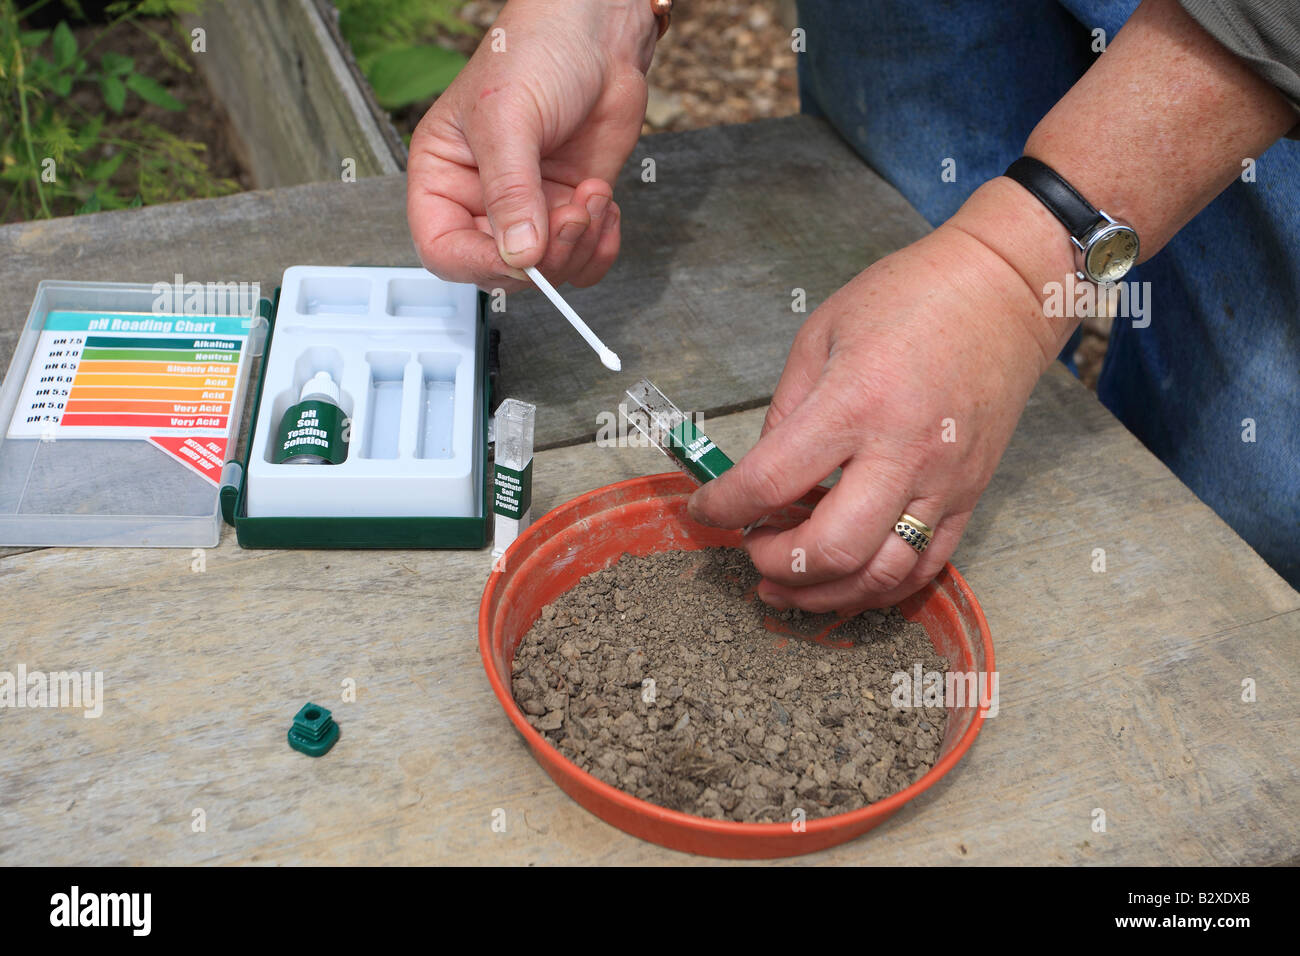 SOILTESTING pH STEP 2 ADDING A SPOONFULL OF BARIUM SULPHATE TO THE TUBE WILL FLOCULATE THE SOIL PARTICLES AND ASSIST - Stock Image